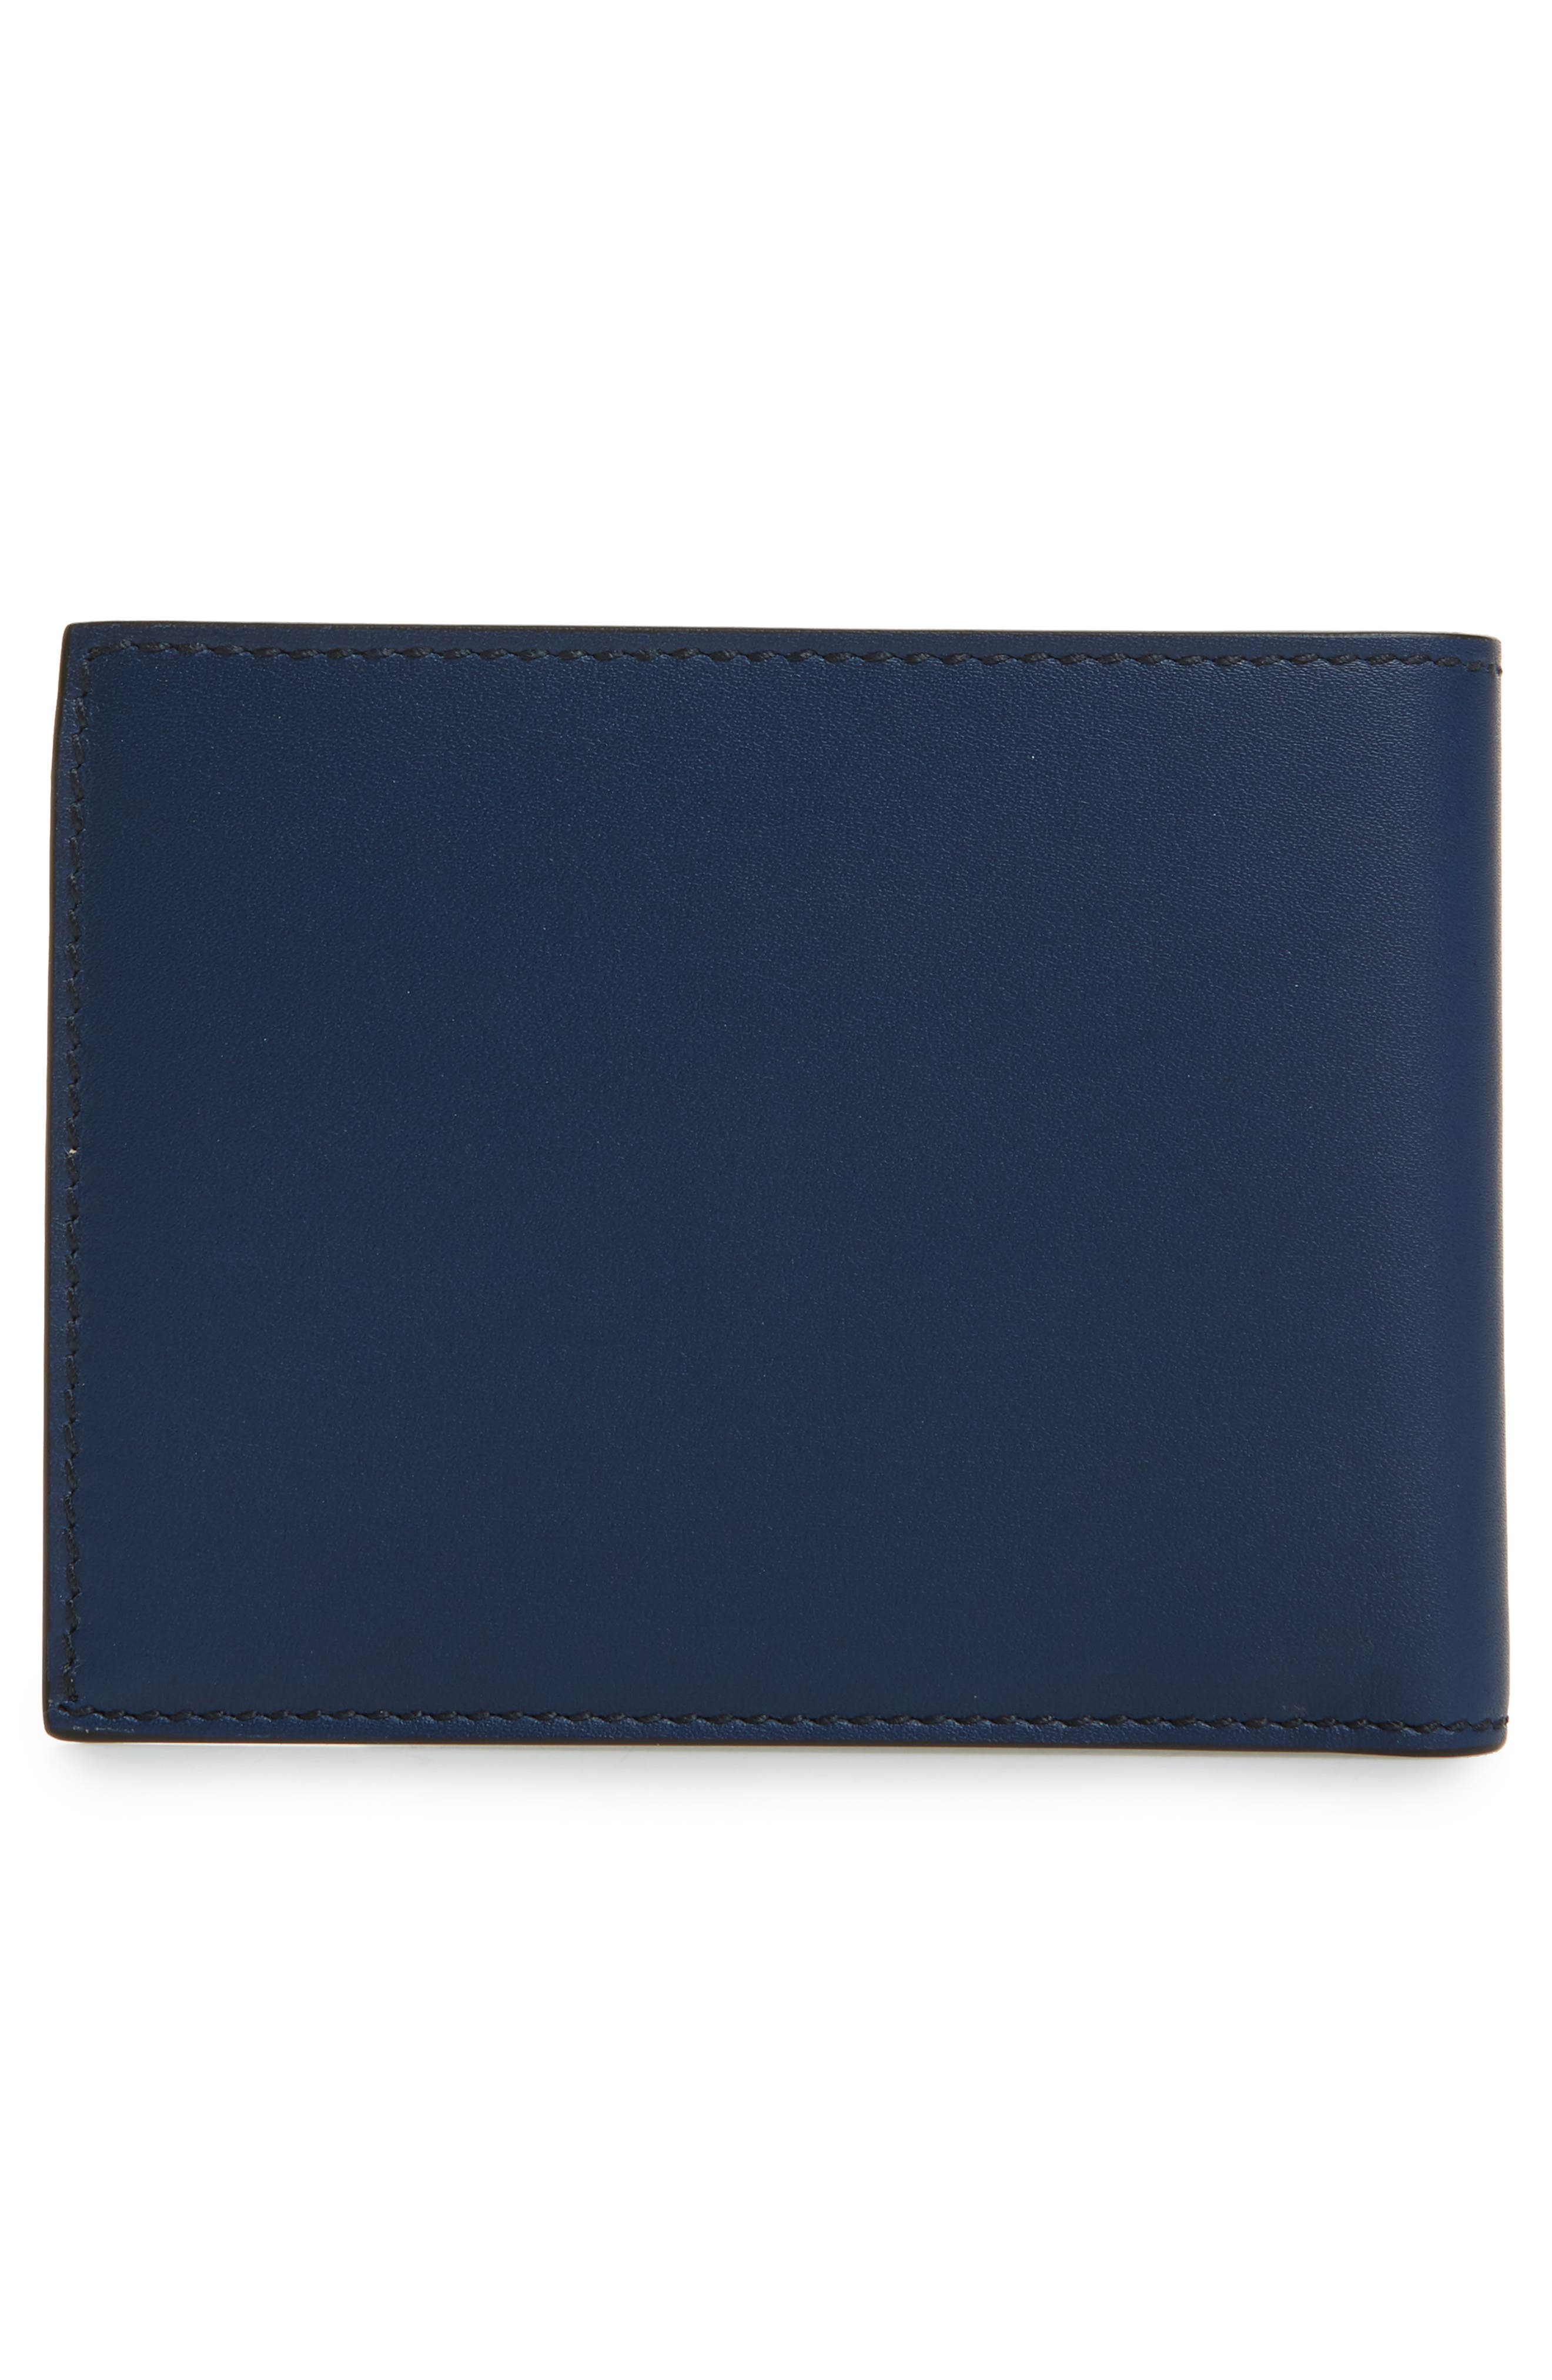 Leather Bifold Wallet,                             Alternate thumbnail 2, color,                             Ultramarine